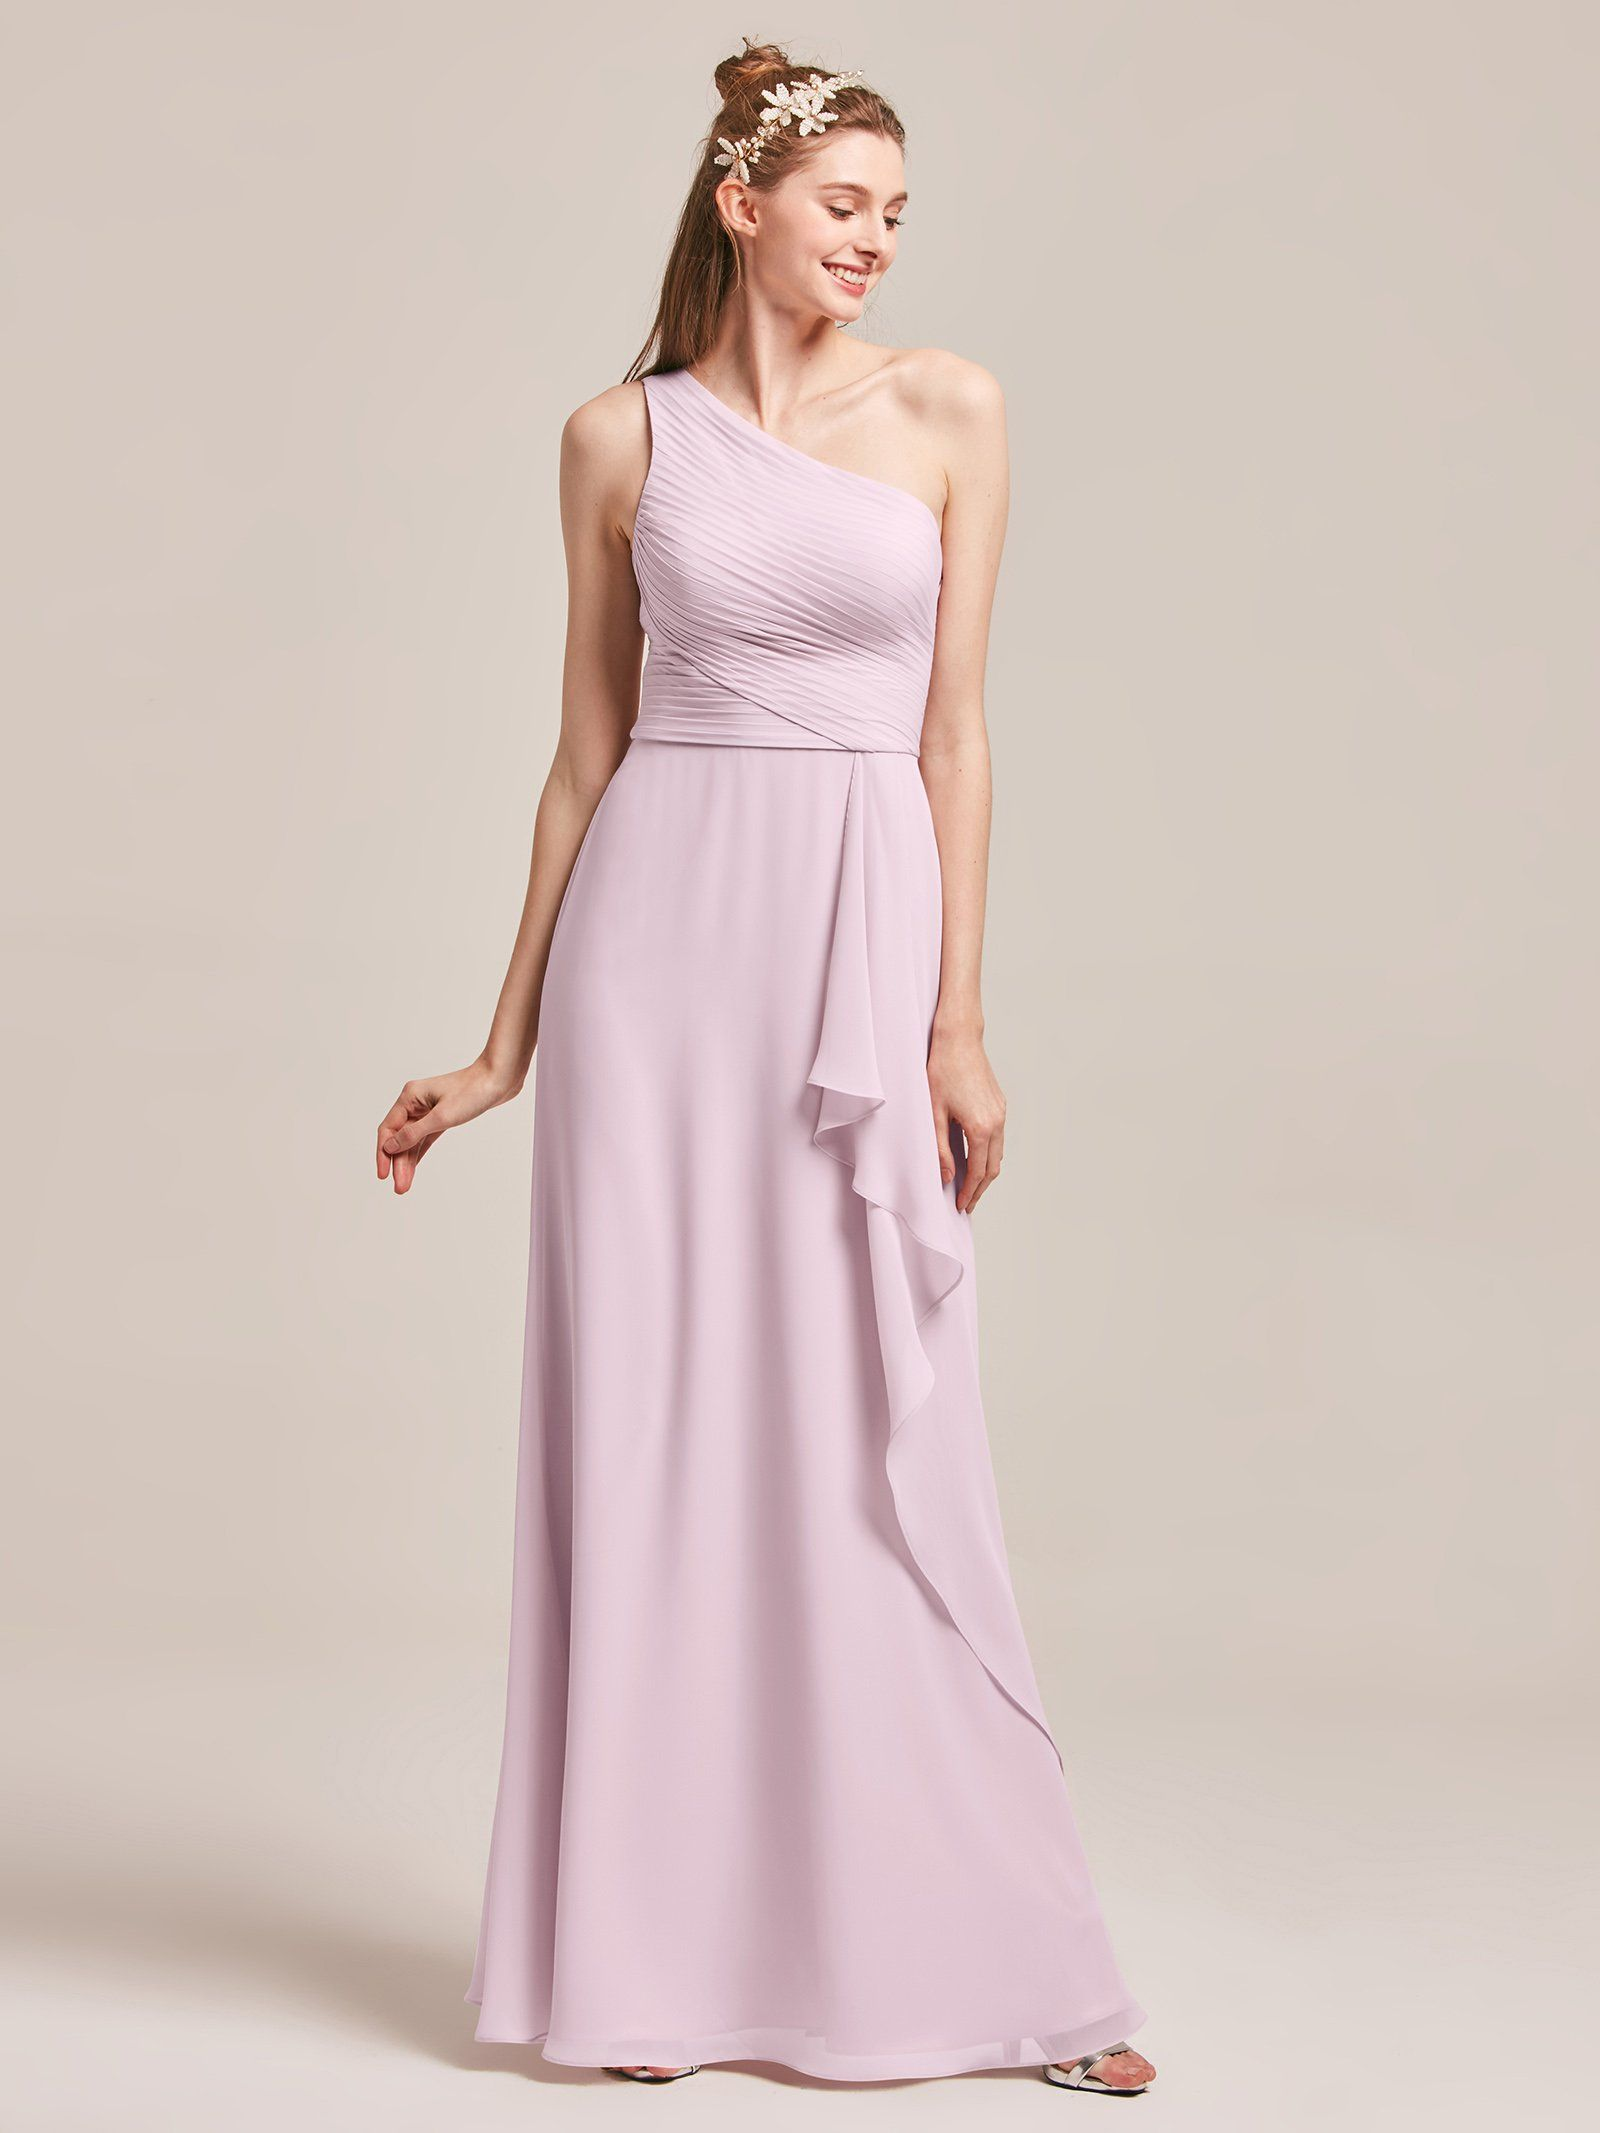 Maternity outfits skinny maternity dresses awei asymmetrical